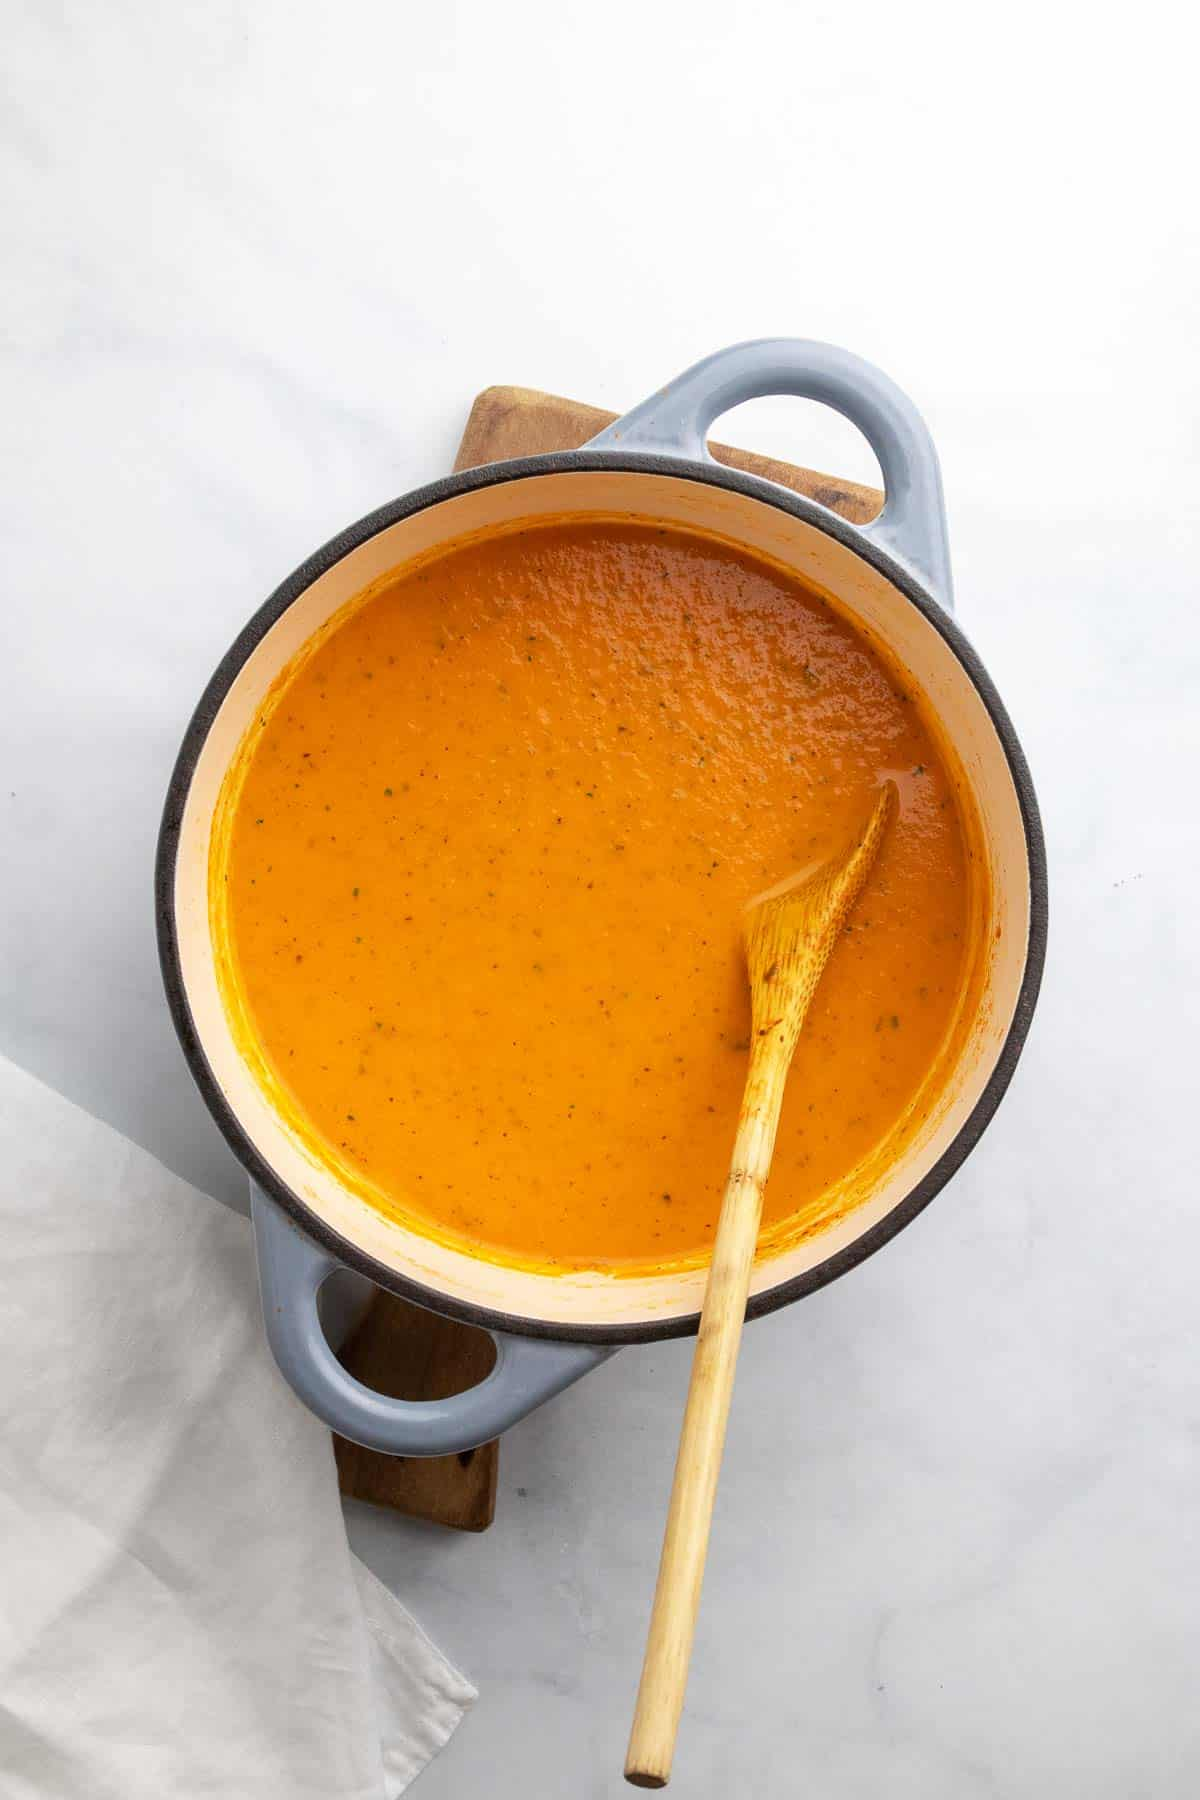 Blended soup in a heavy bottom pan with a wooden spoon